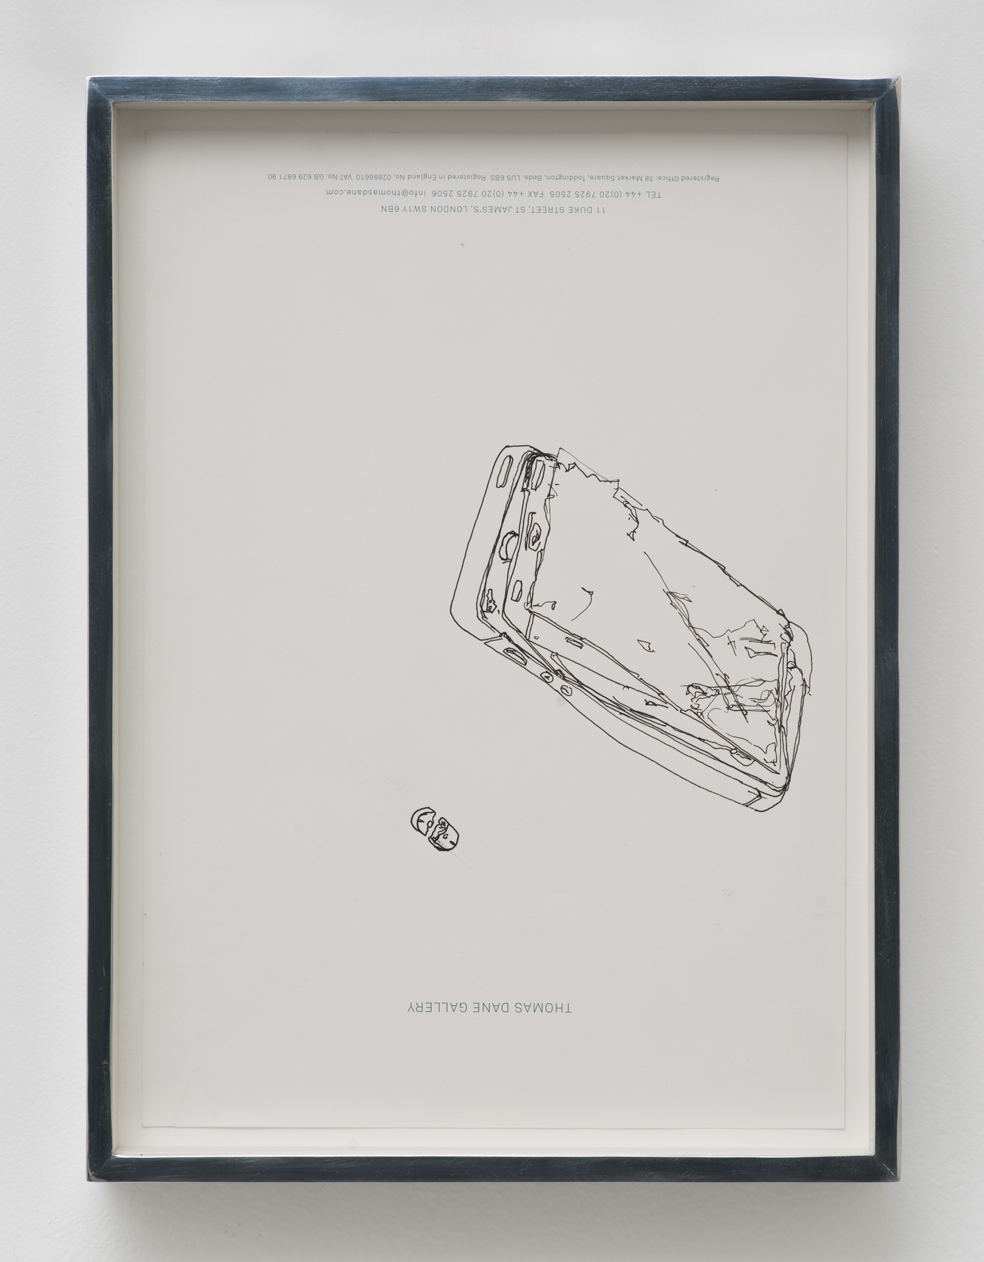 iPhone 5 A1429/Adderall, Amphetamine and Dextroamphetamine 10 mg, cor 132, Round, Multi-Segmented, Core Pharmaceuticals, Inc.: Thomas Dane Gallery, London, United Kingdom, September 27, 2014   2014  Ink on letterhead  12 7/8 x 9 1/2 inches   Drawings, 2014–    Walid AlBeshti, 2015    Atopolis, 2015